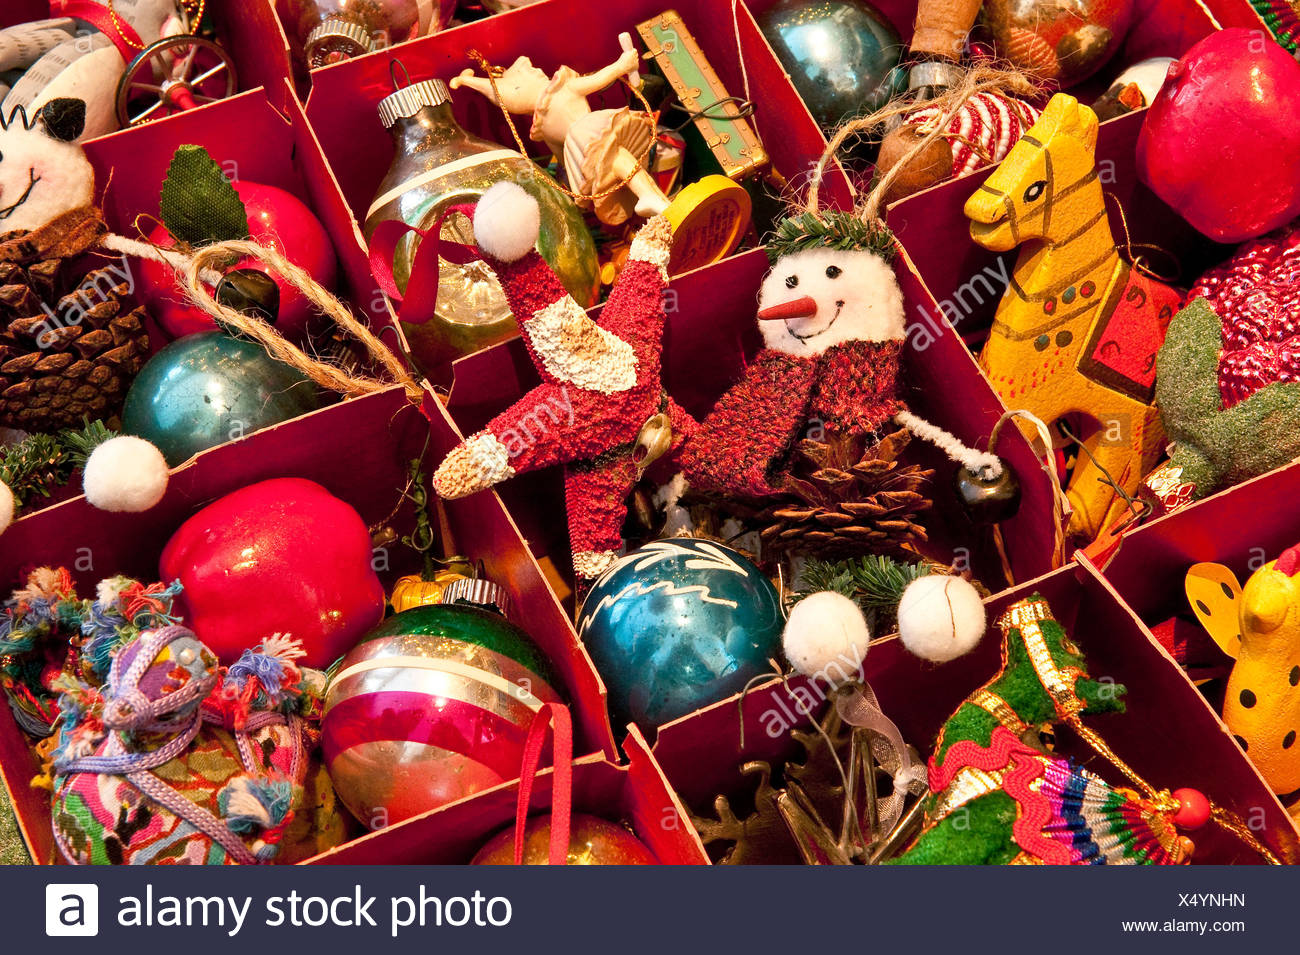 Old Fashioned Christmas Tree Decorations Stock Photos & Old ...